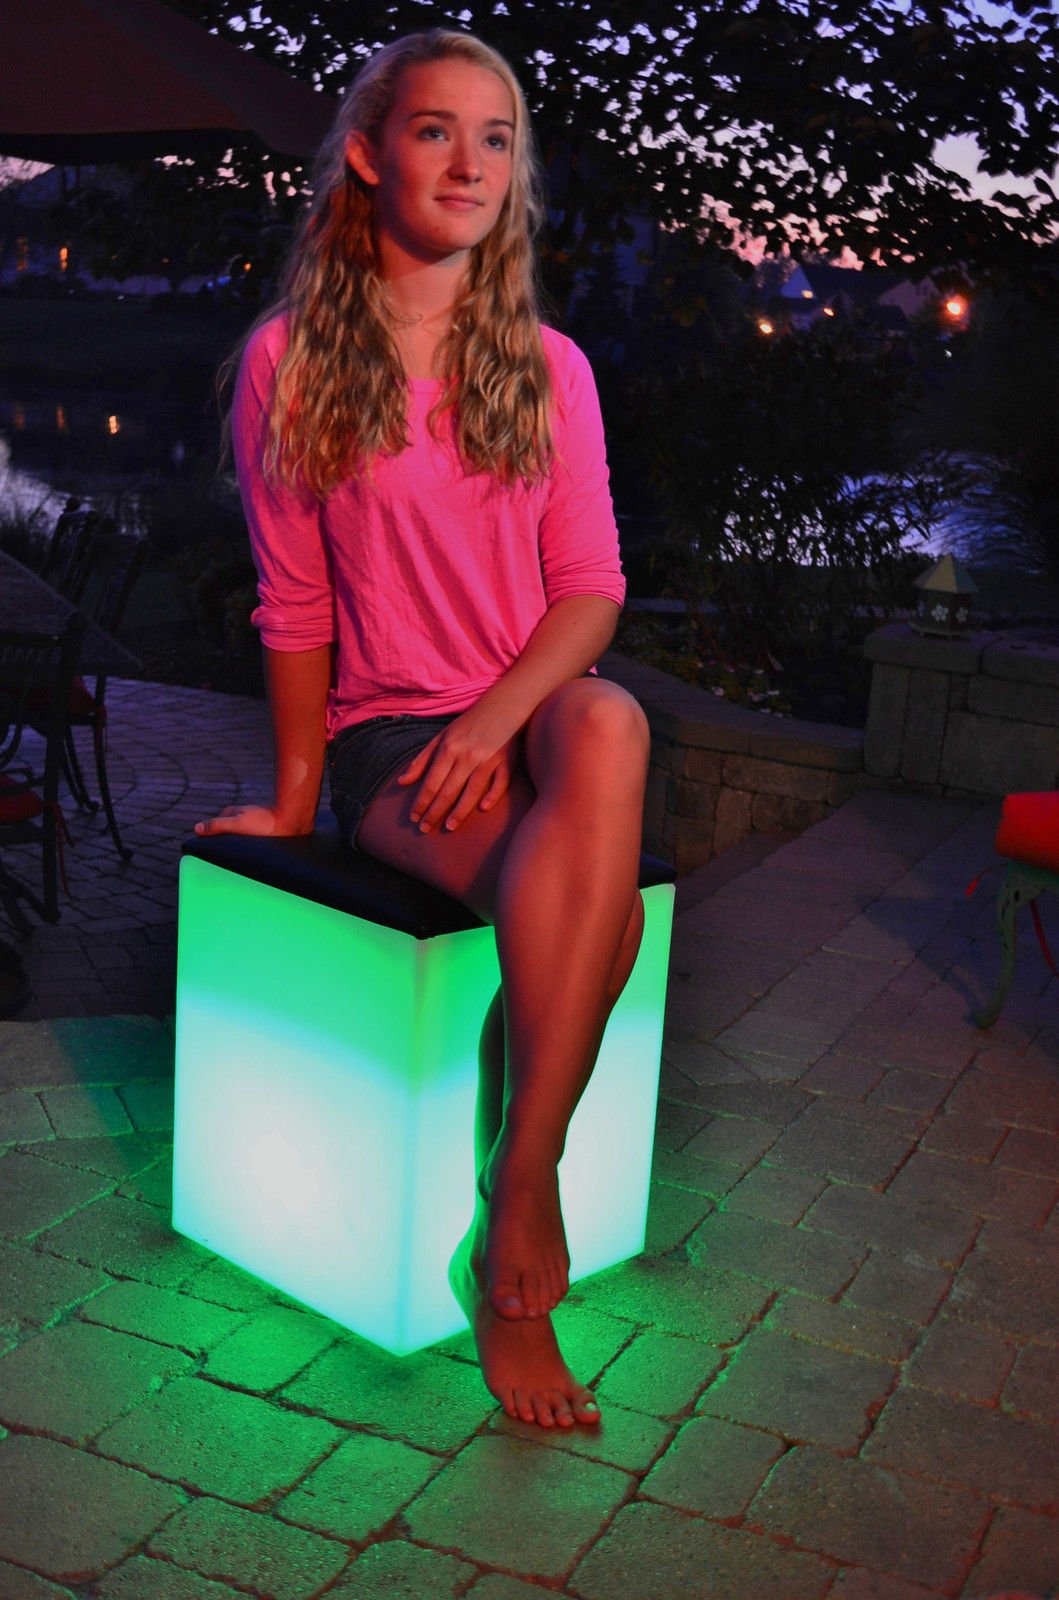 Pool Waterproof Color Changing Patio Floating LED Light Padded Seat With Ebook by MRT SUPPLY